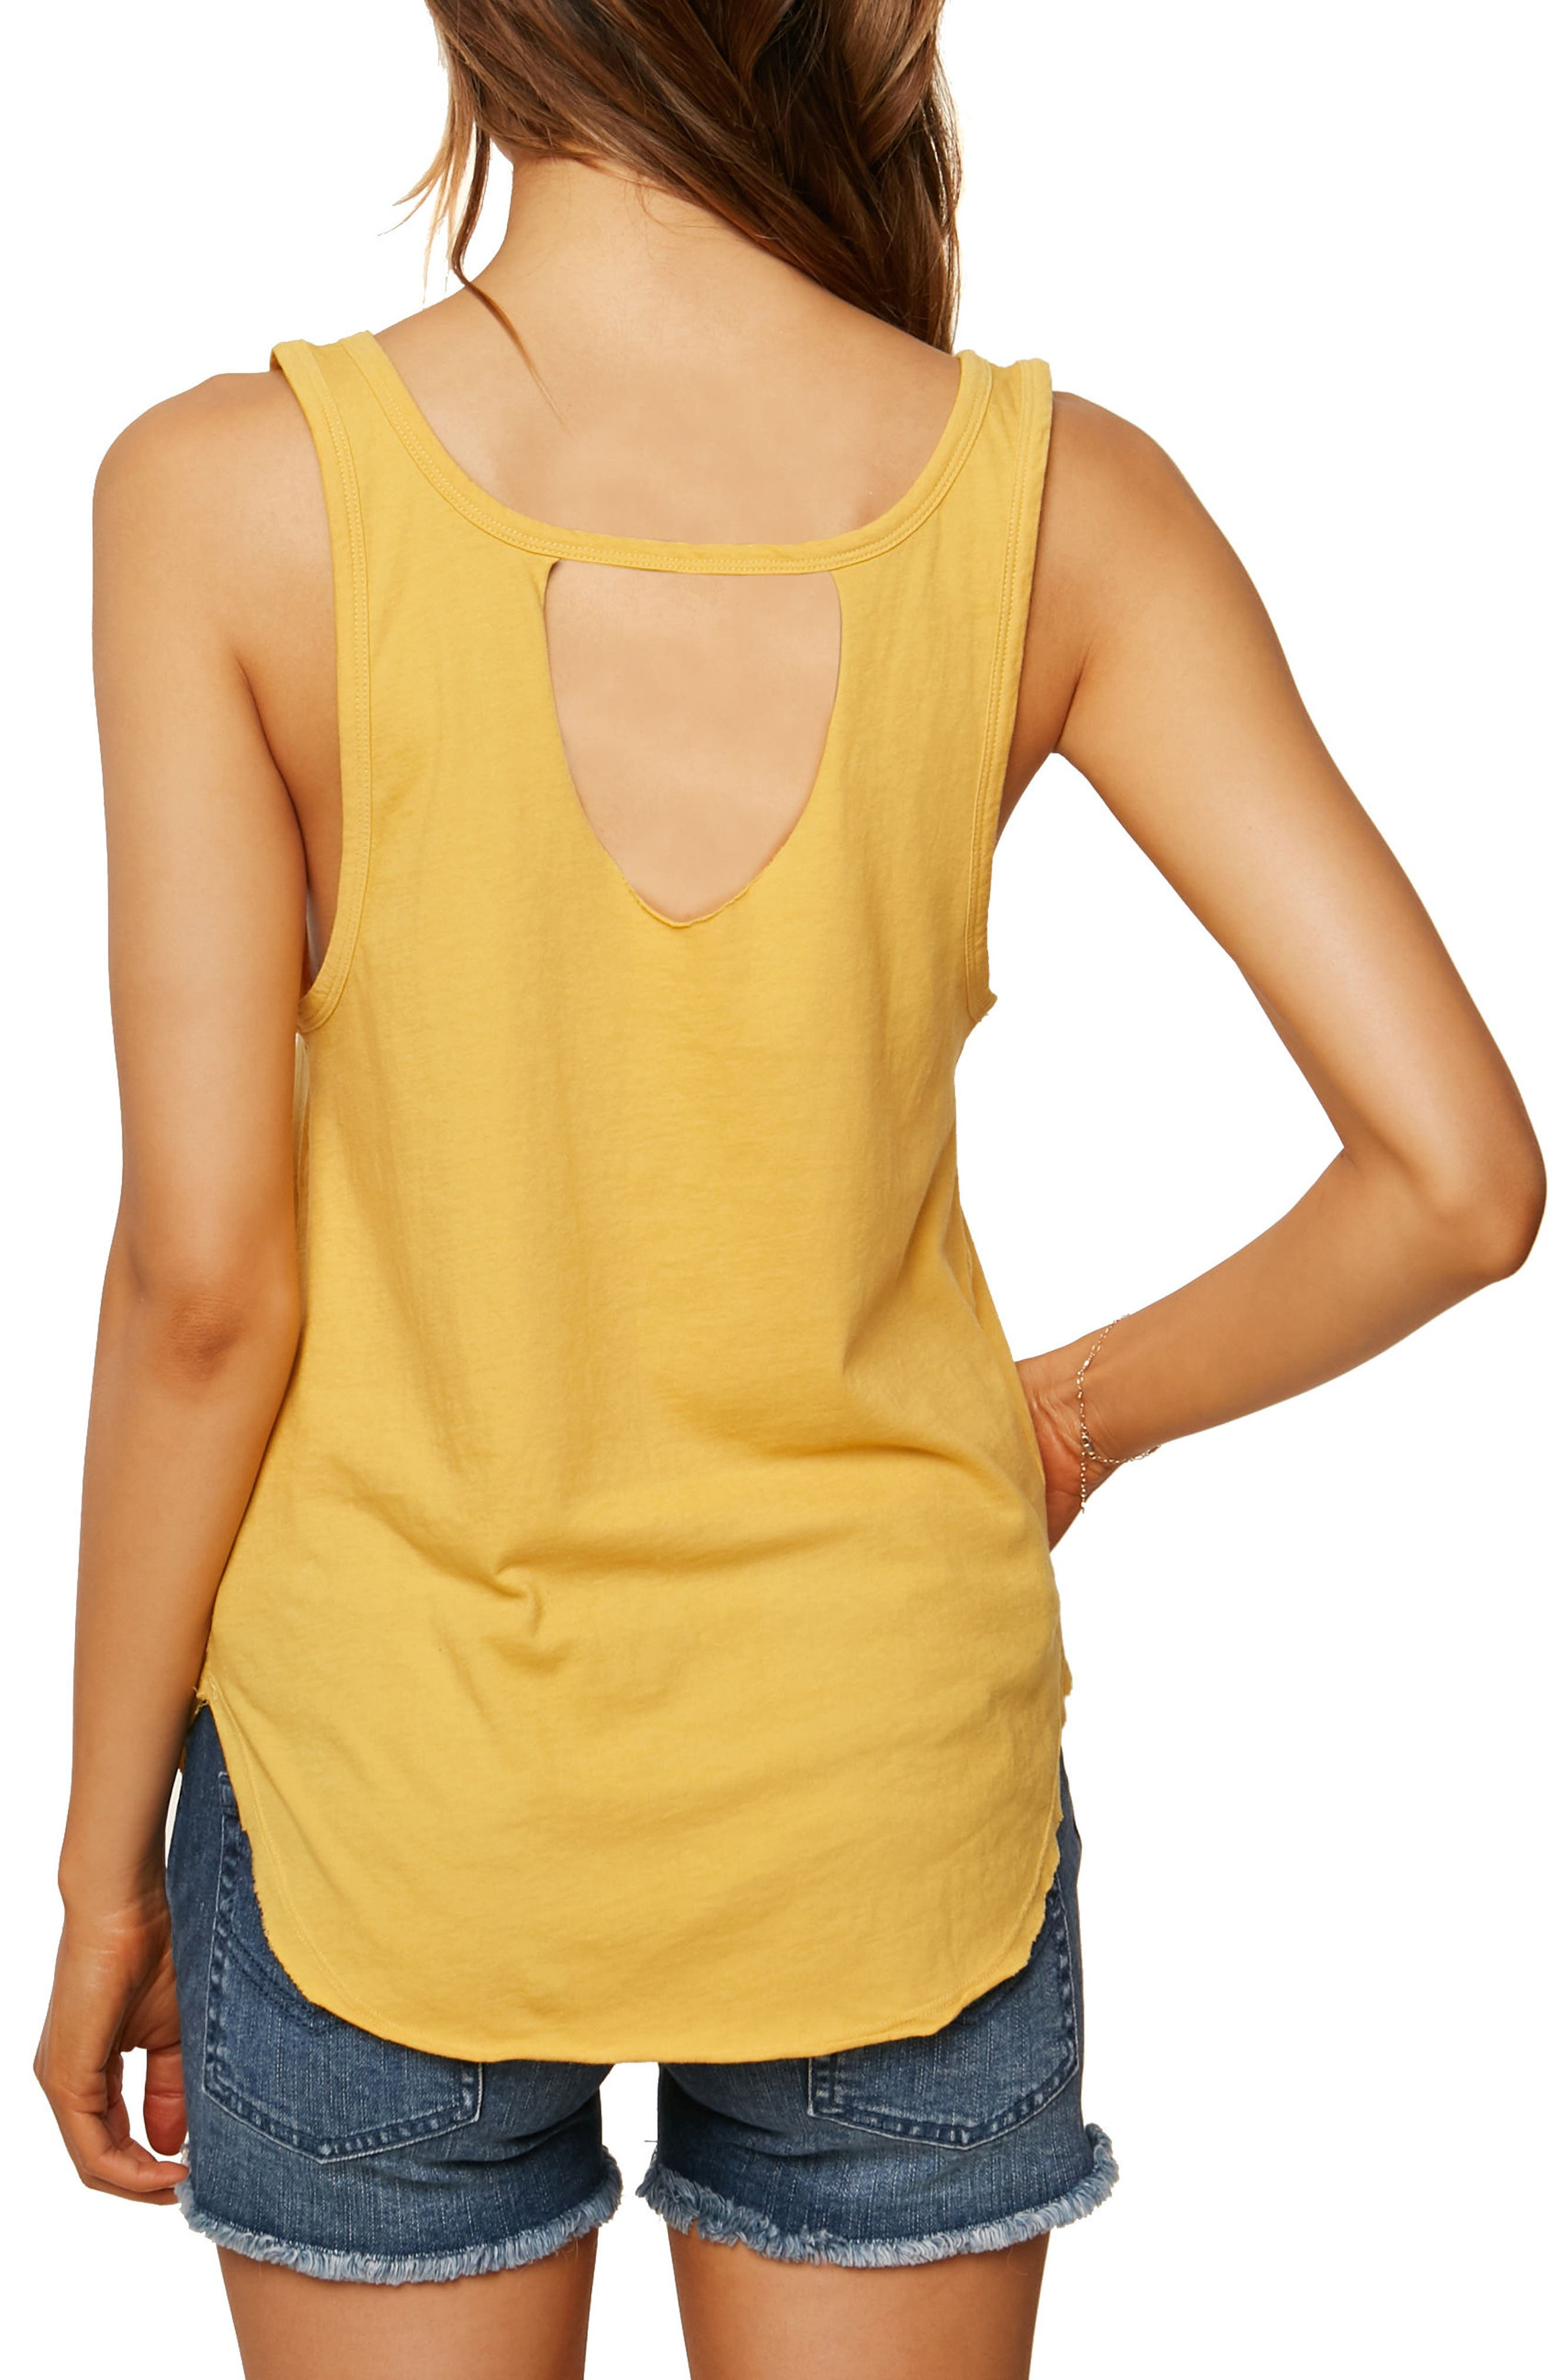 Halfsies Graphic Tank Top,                             Alternate thumbnail 2, color,